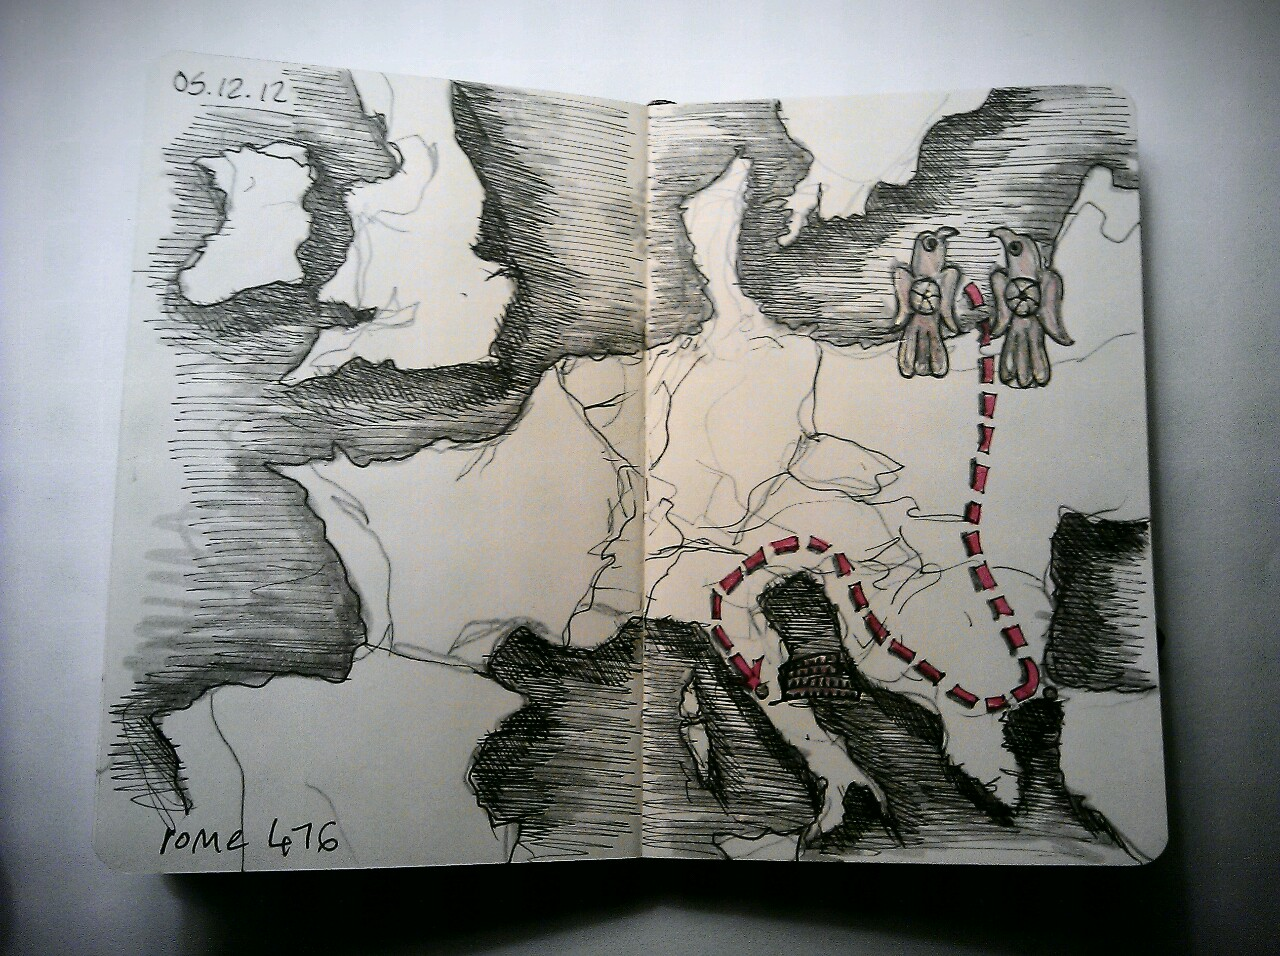 365 drawings later … day 309 … rome 476